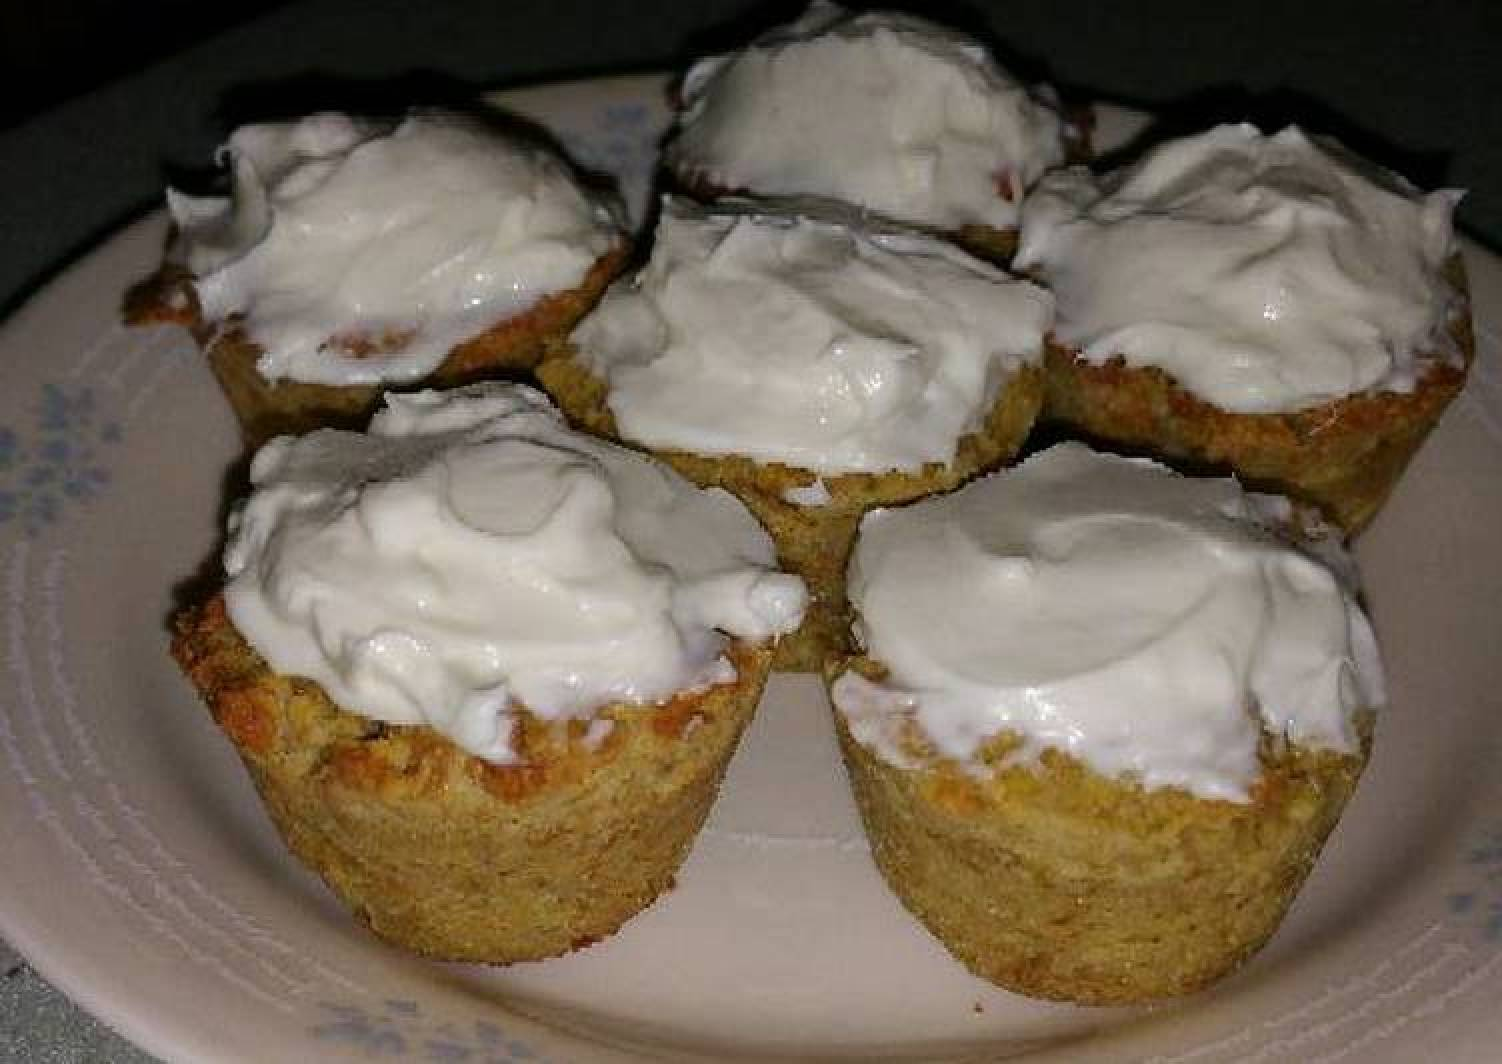 Tart Tangerine Cupcakes (from All-purpose Baking Mix)